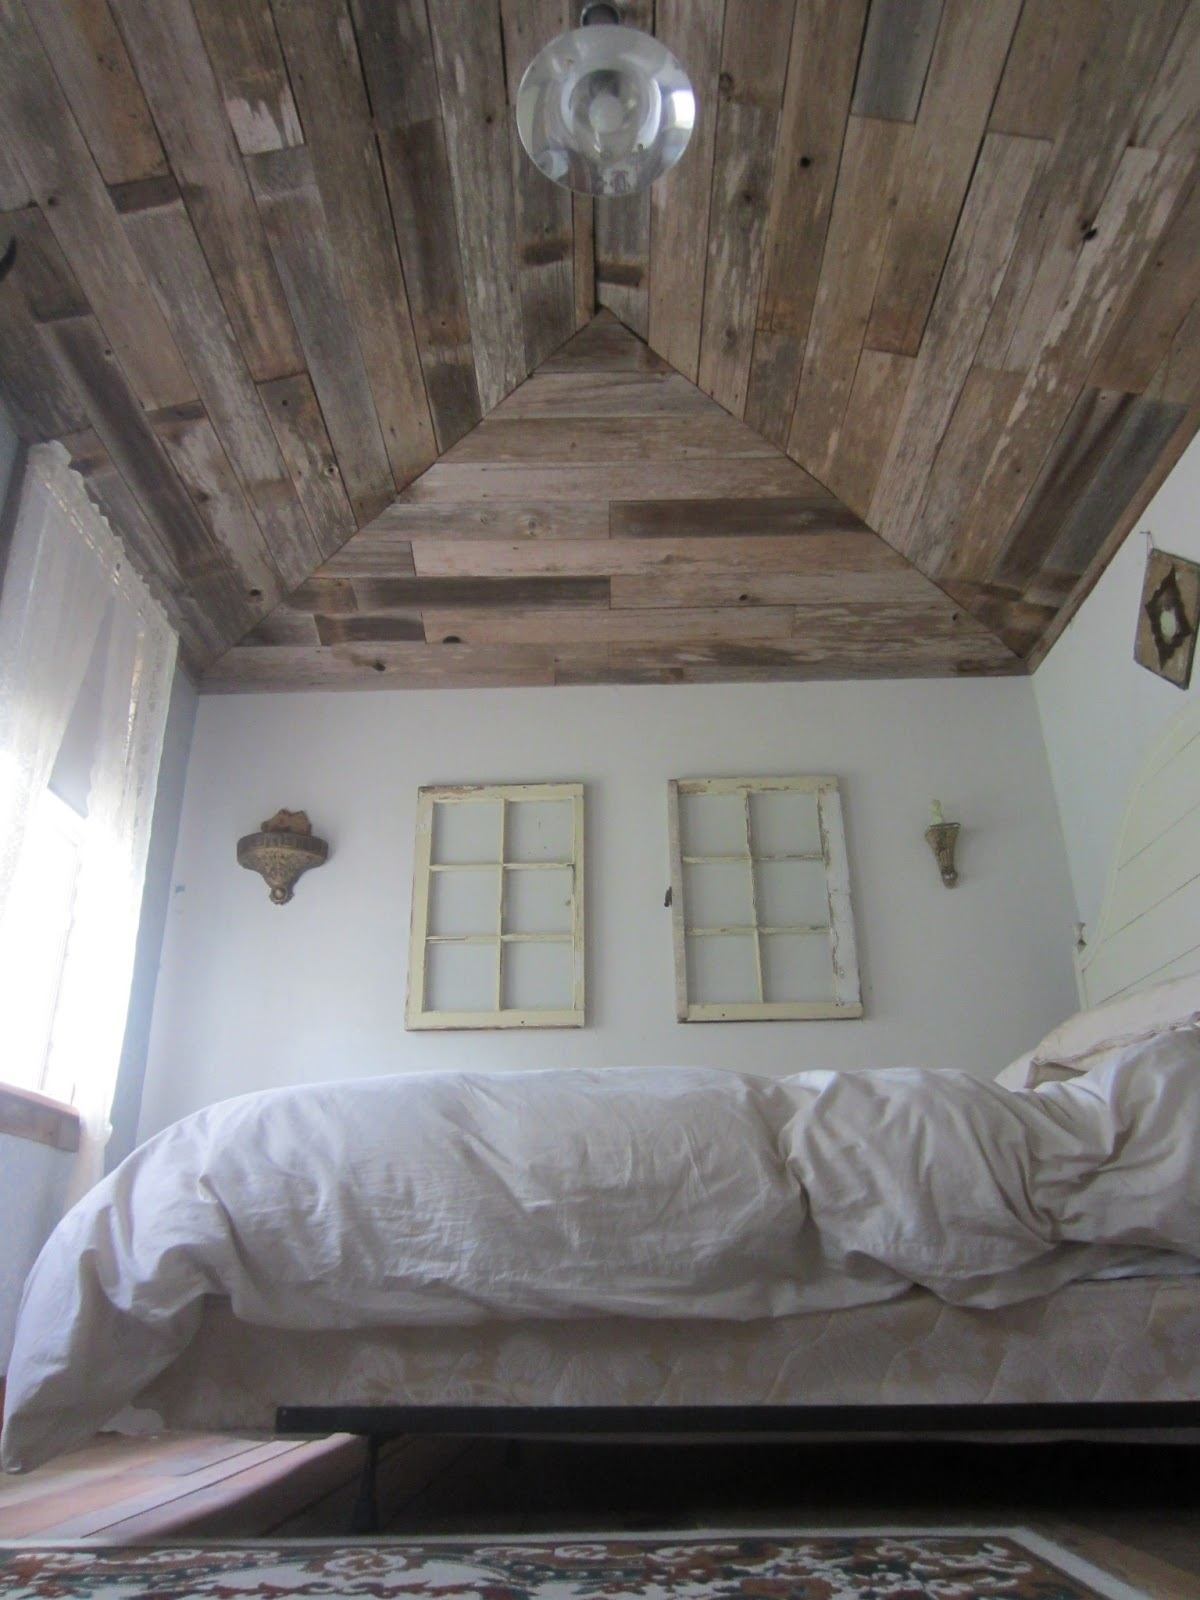 Barn Board And Fence Lumber Rustic Ceilings Siding For Your Tiny House